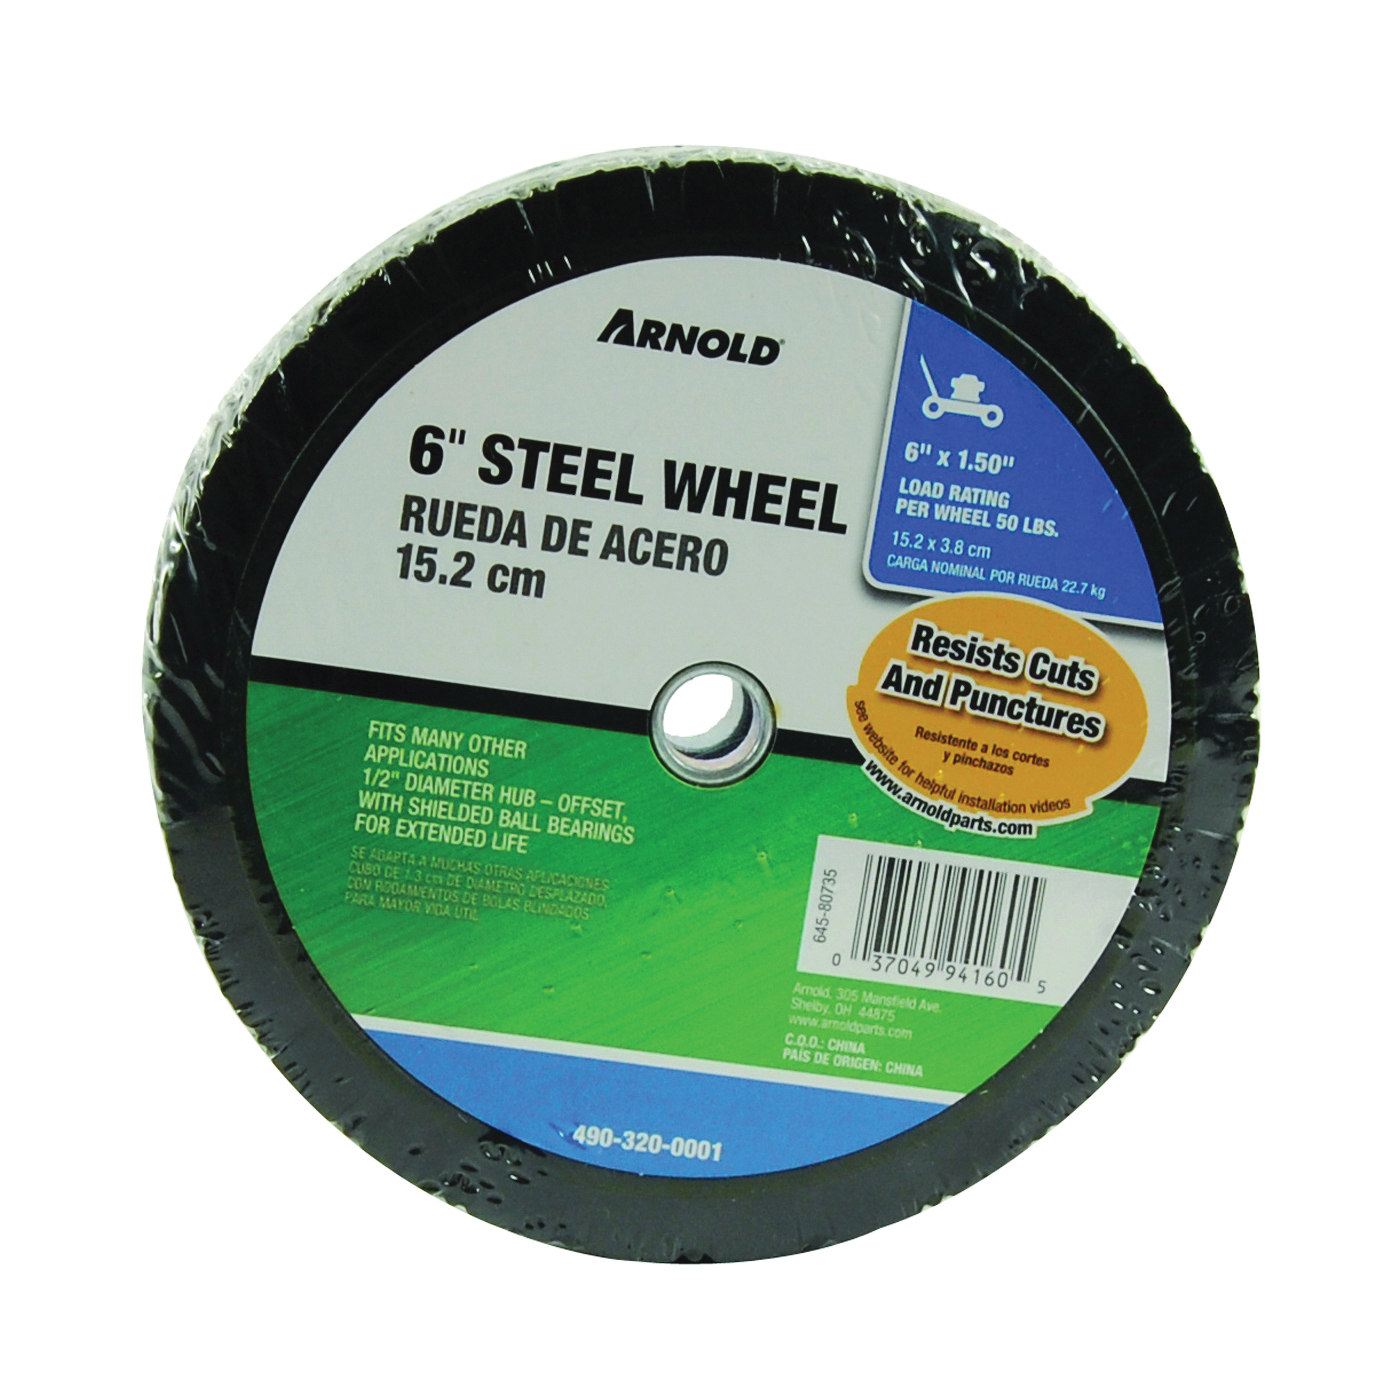 Picture of ARNOLD 490-320-0001 Tread Wheel, Steel